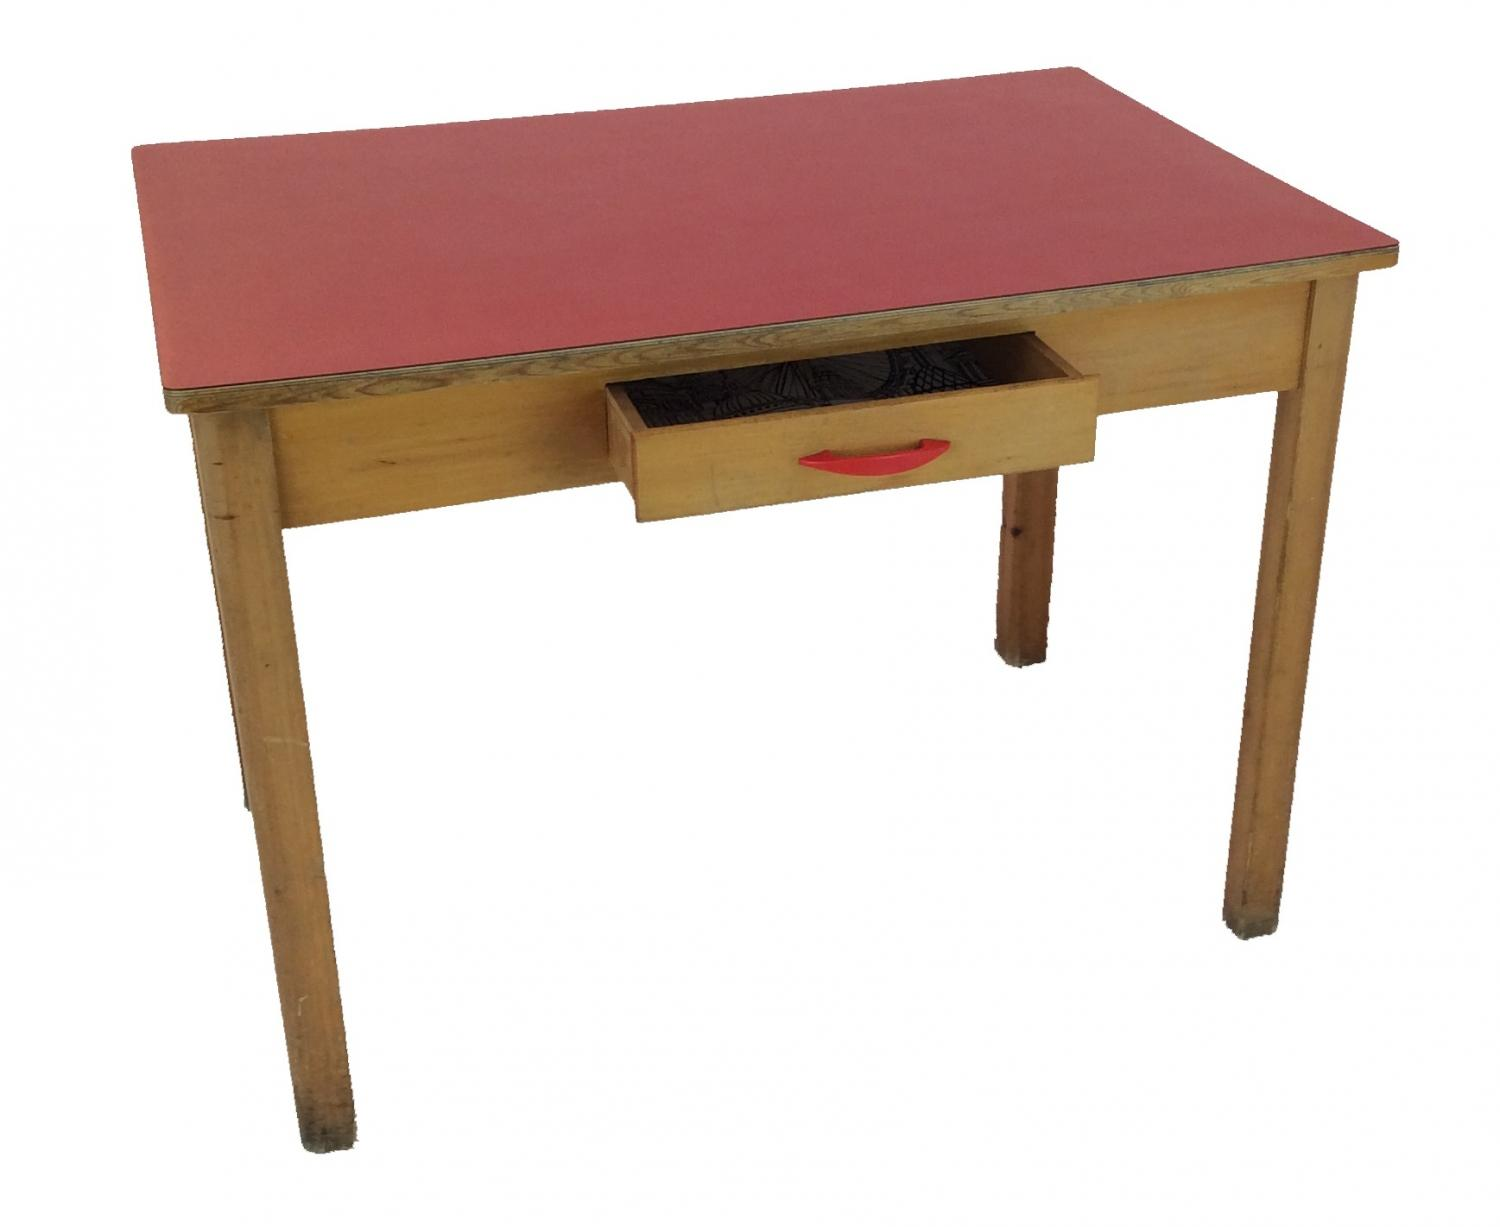 Retro red formica table in sold recently for Formica table